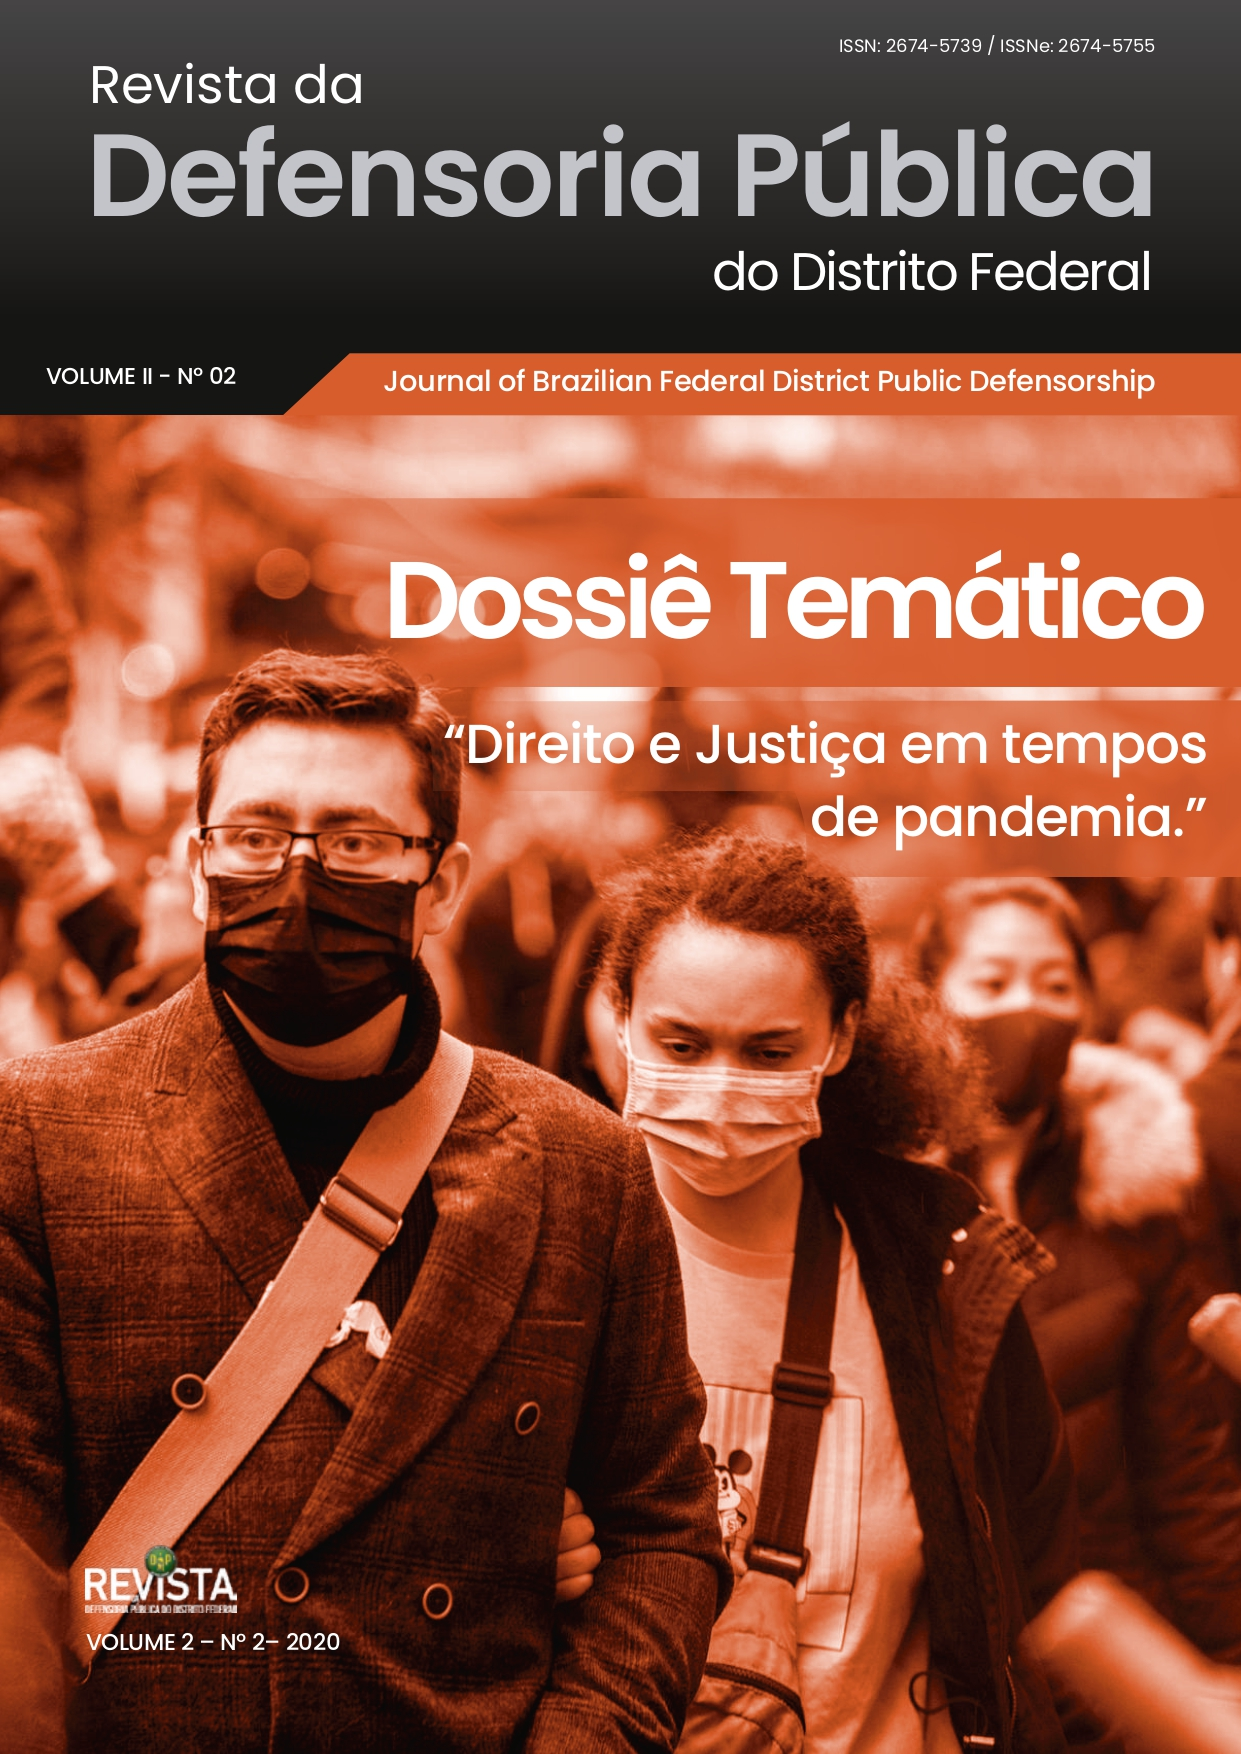 capa da Revista da Defensoria Pública